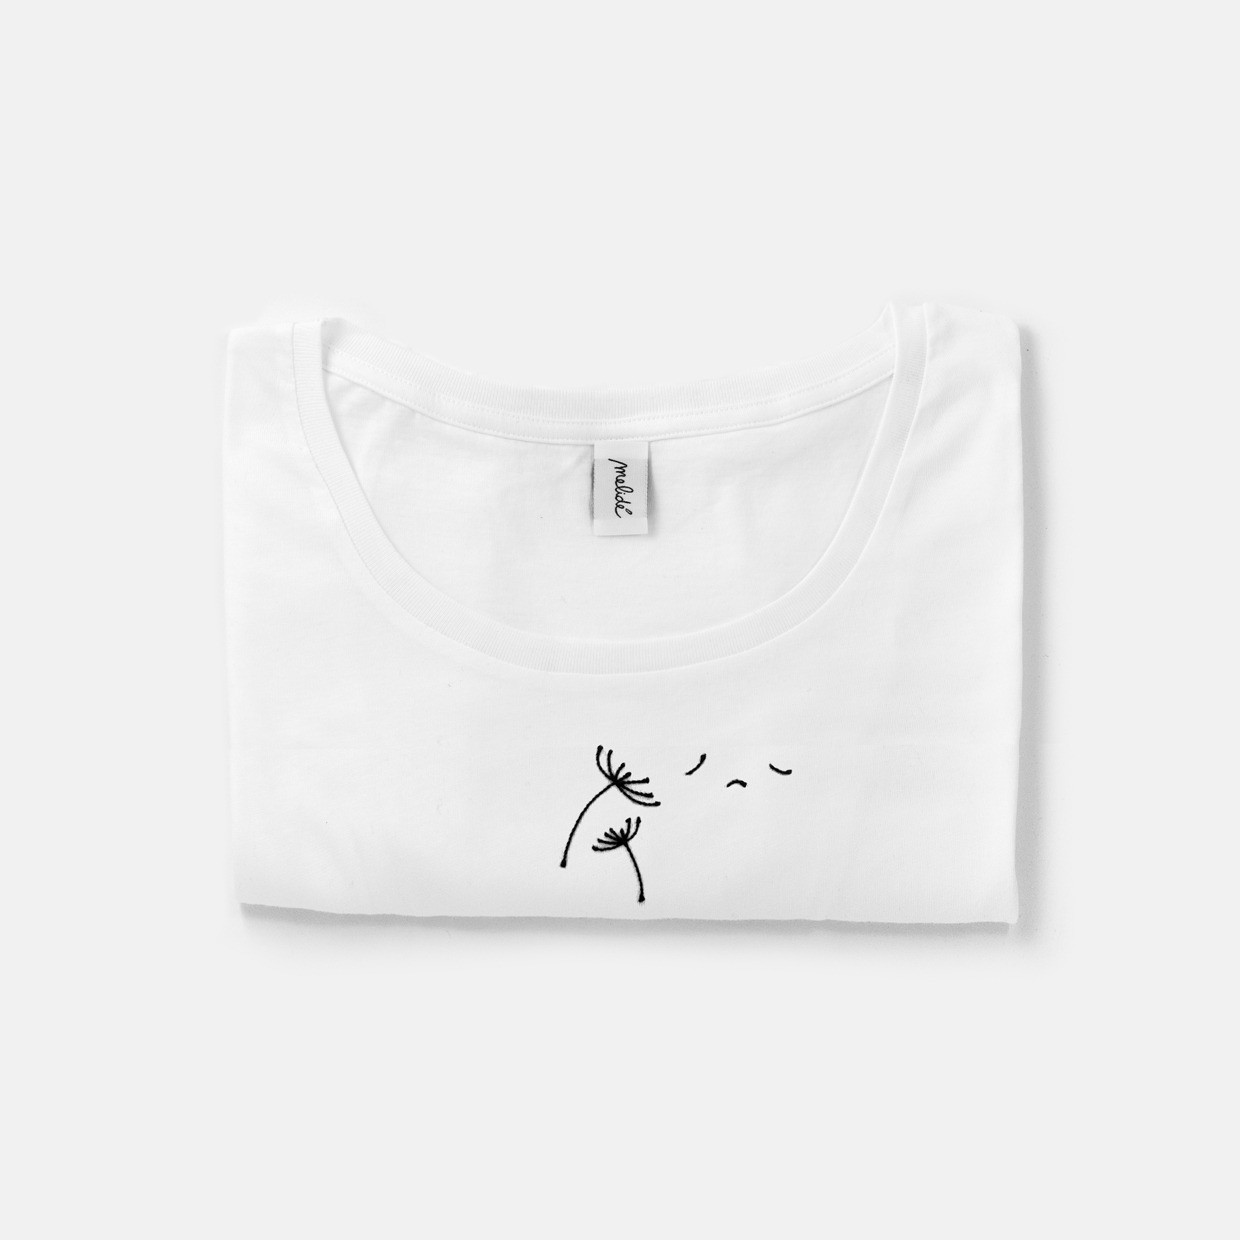 The SOFFIONE wide neck tee